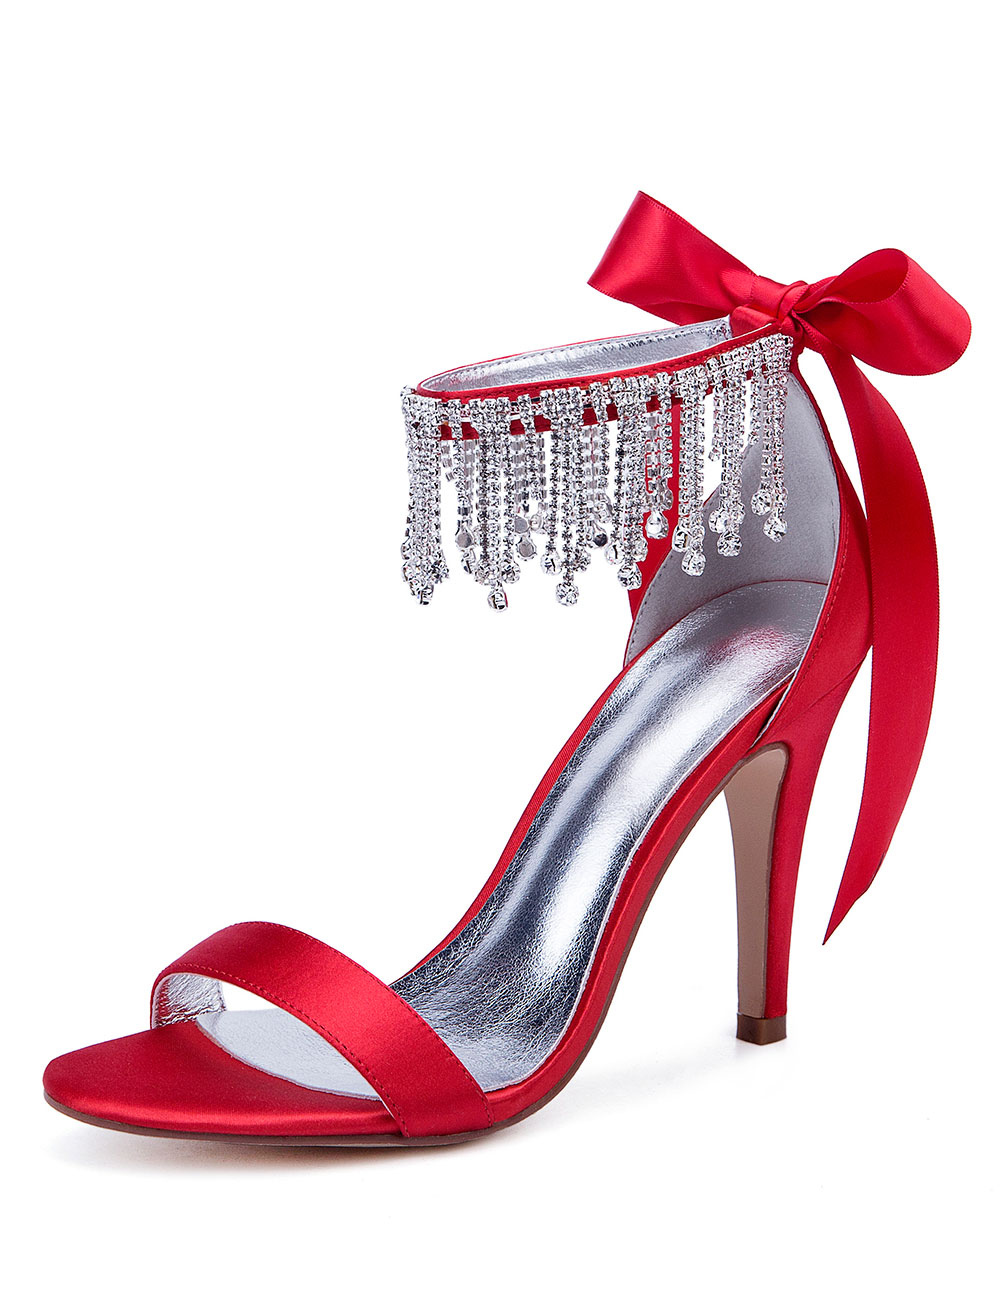 cheap prices coupon codes genuine shoes Red Wedding Shoes Satin Open Toe Rhinestones Bow High Heel Bridal Shoes